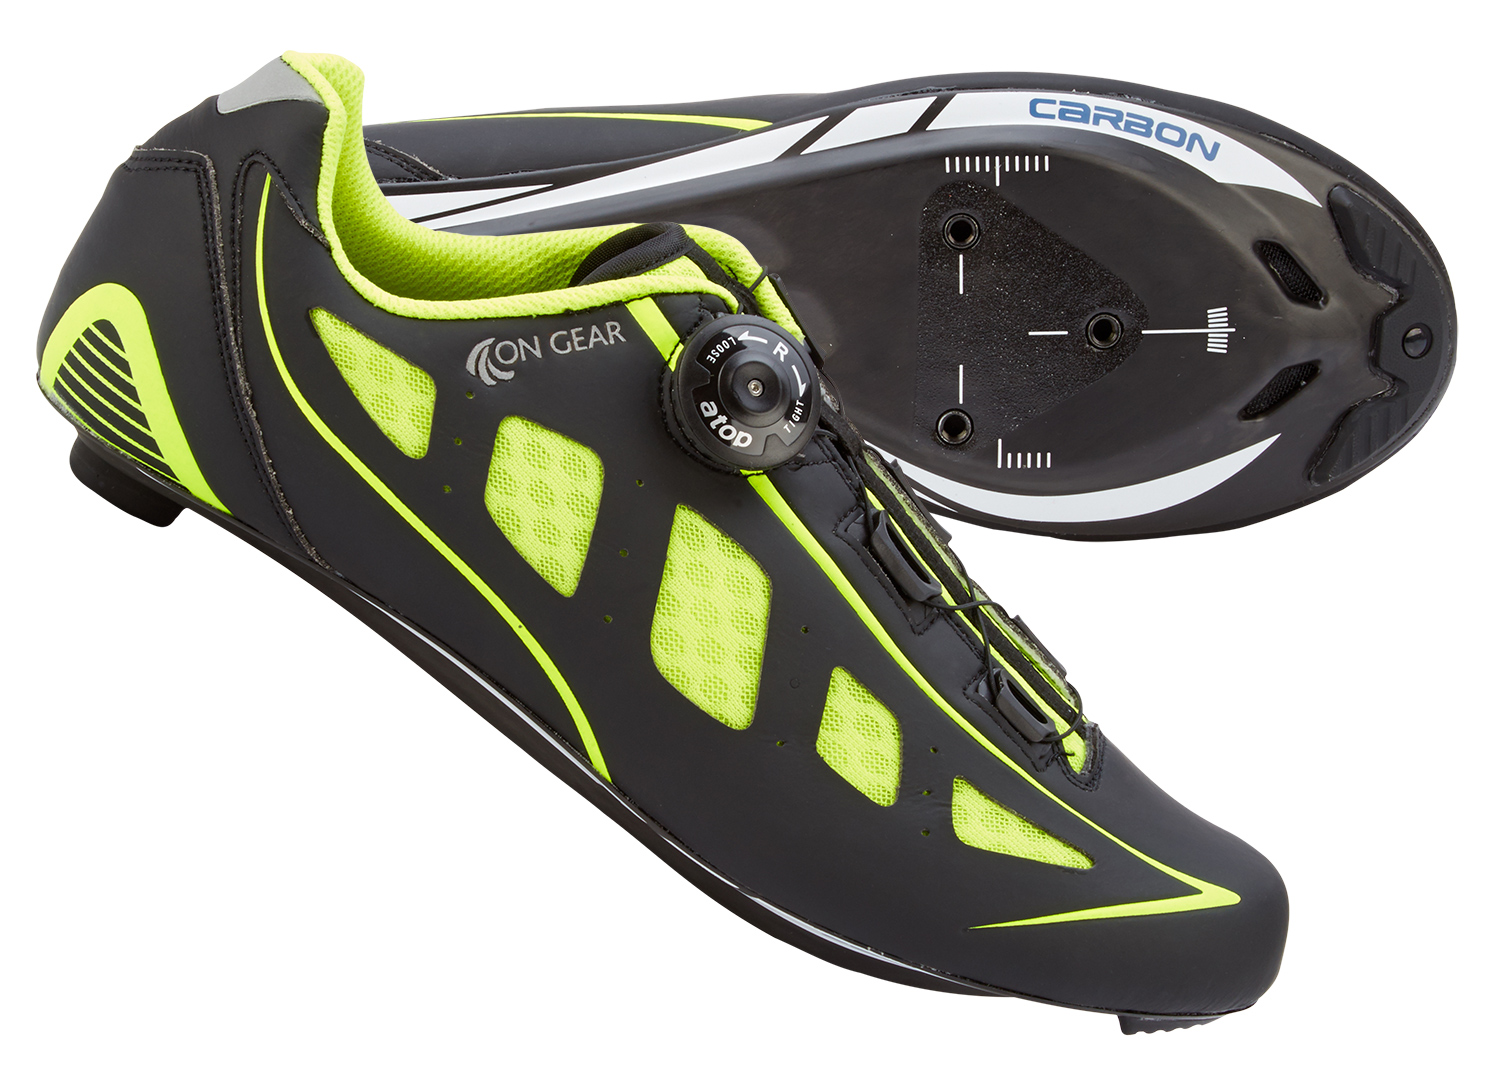 On Gear Cykelsko Carbon Race - Sort/Neongul | Shoes and overlays